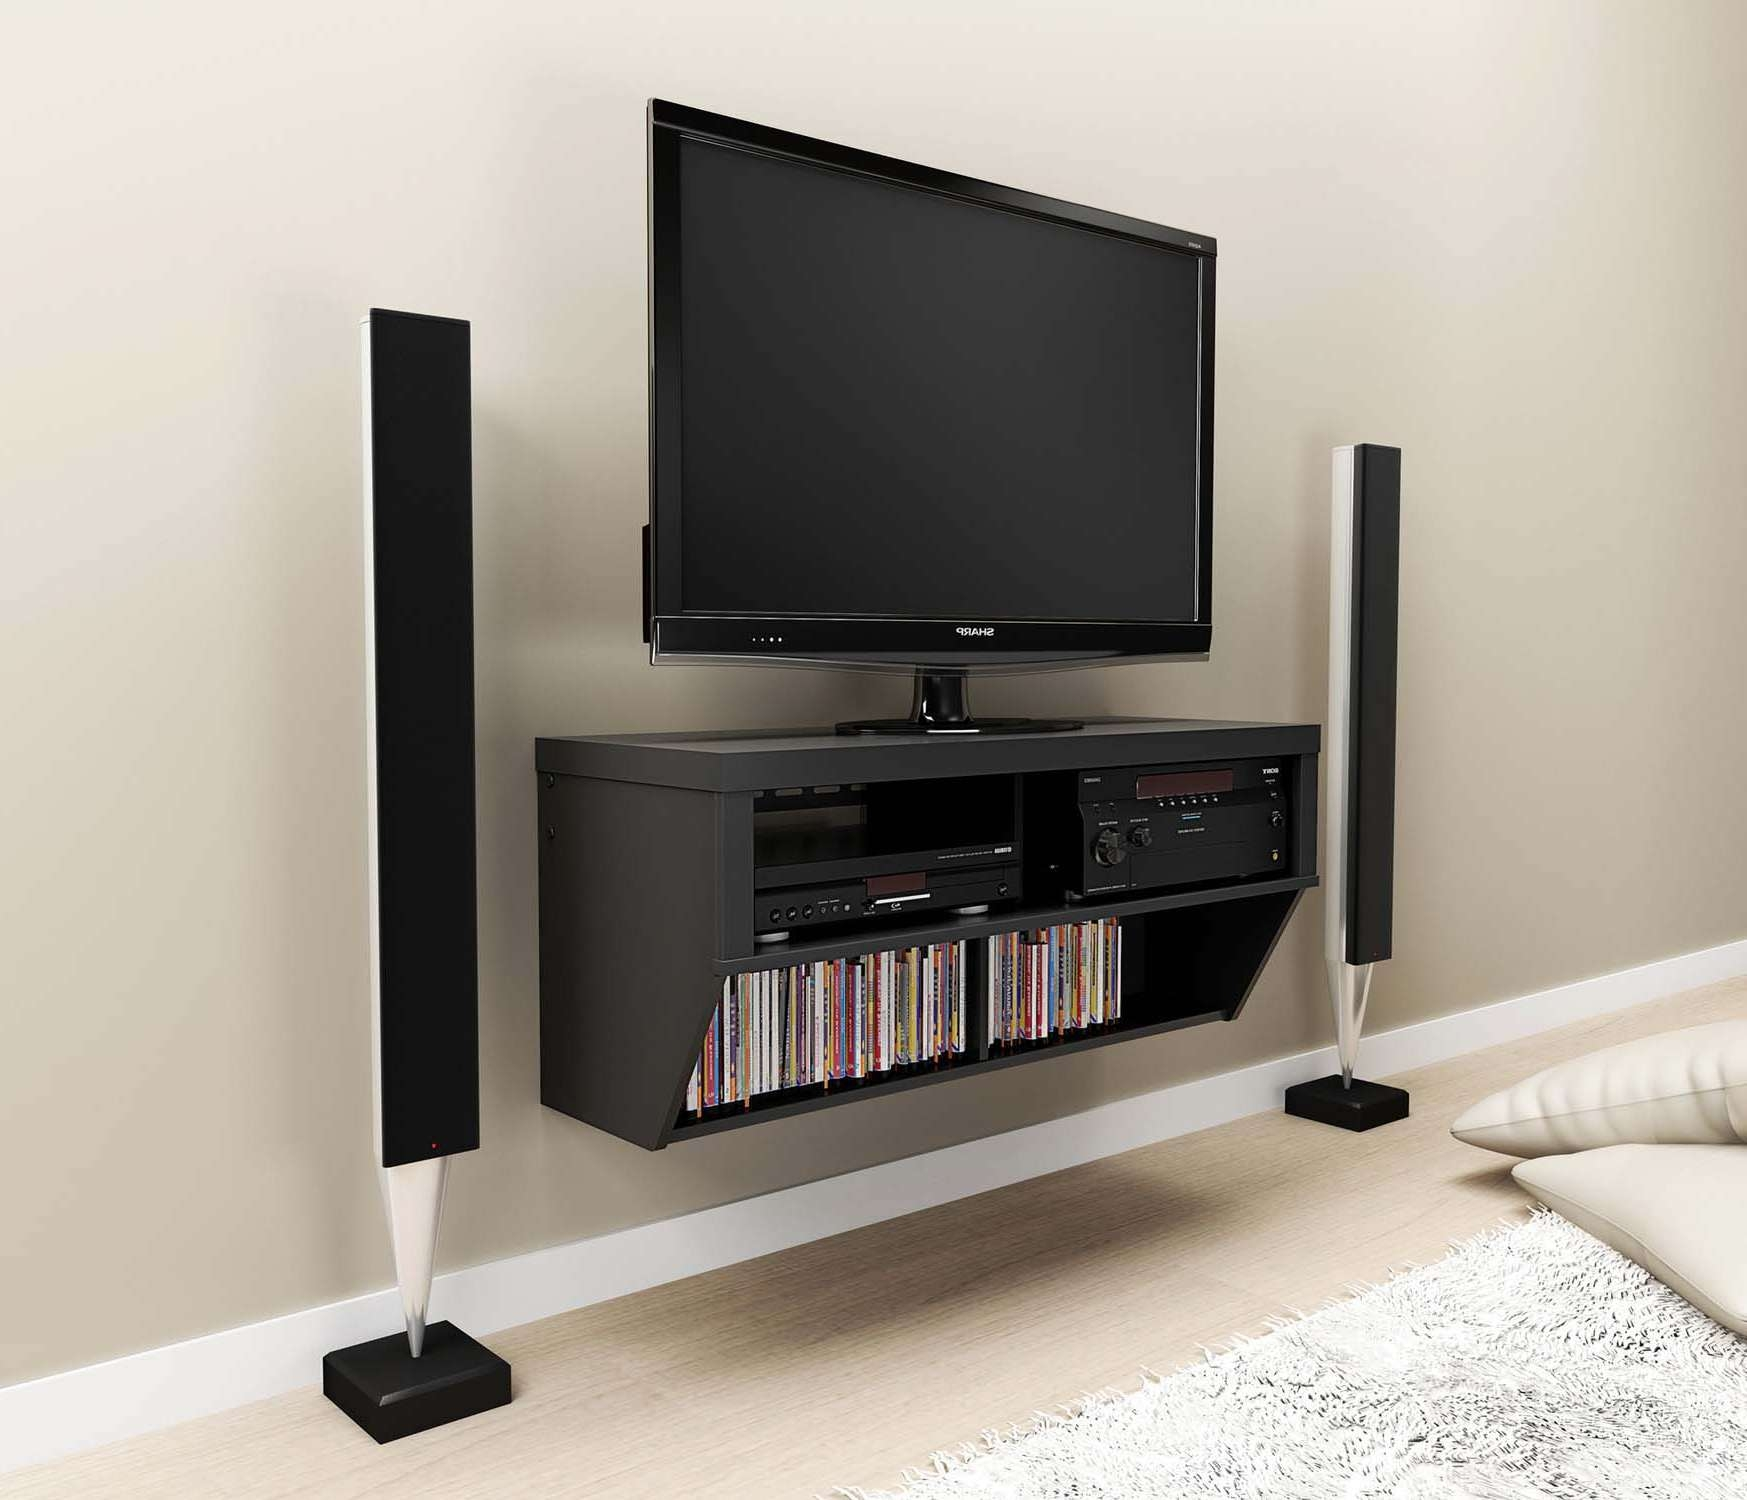 Black Stained Oak Wall Mounted Media Shelf And Tv Stand Of Trendy For Wall Mounted Tv Stands With Shelves (View 5 of 15)